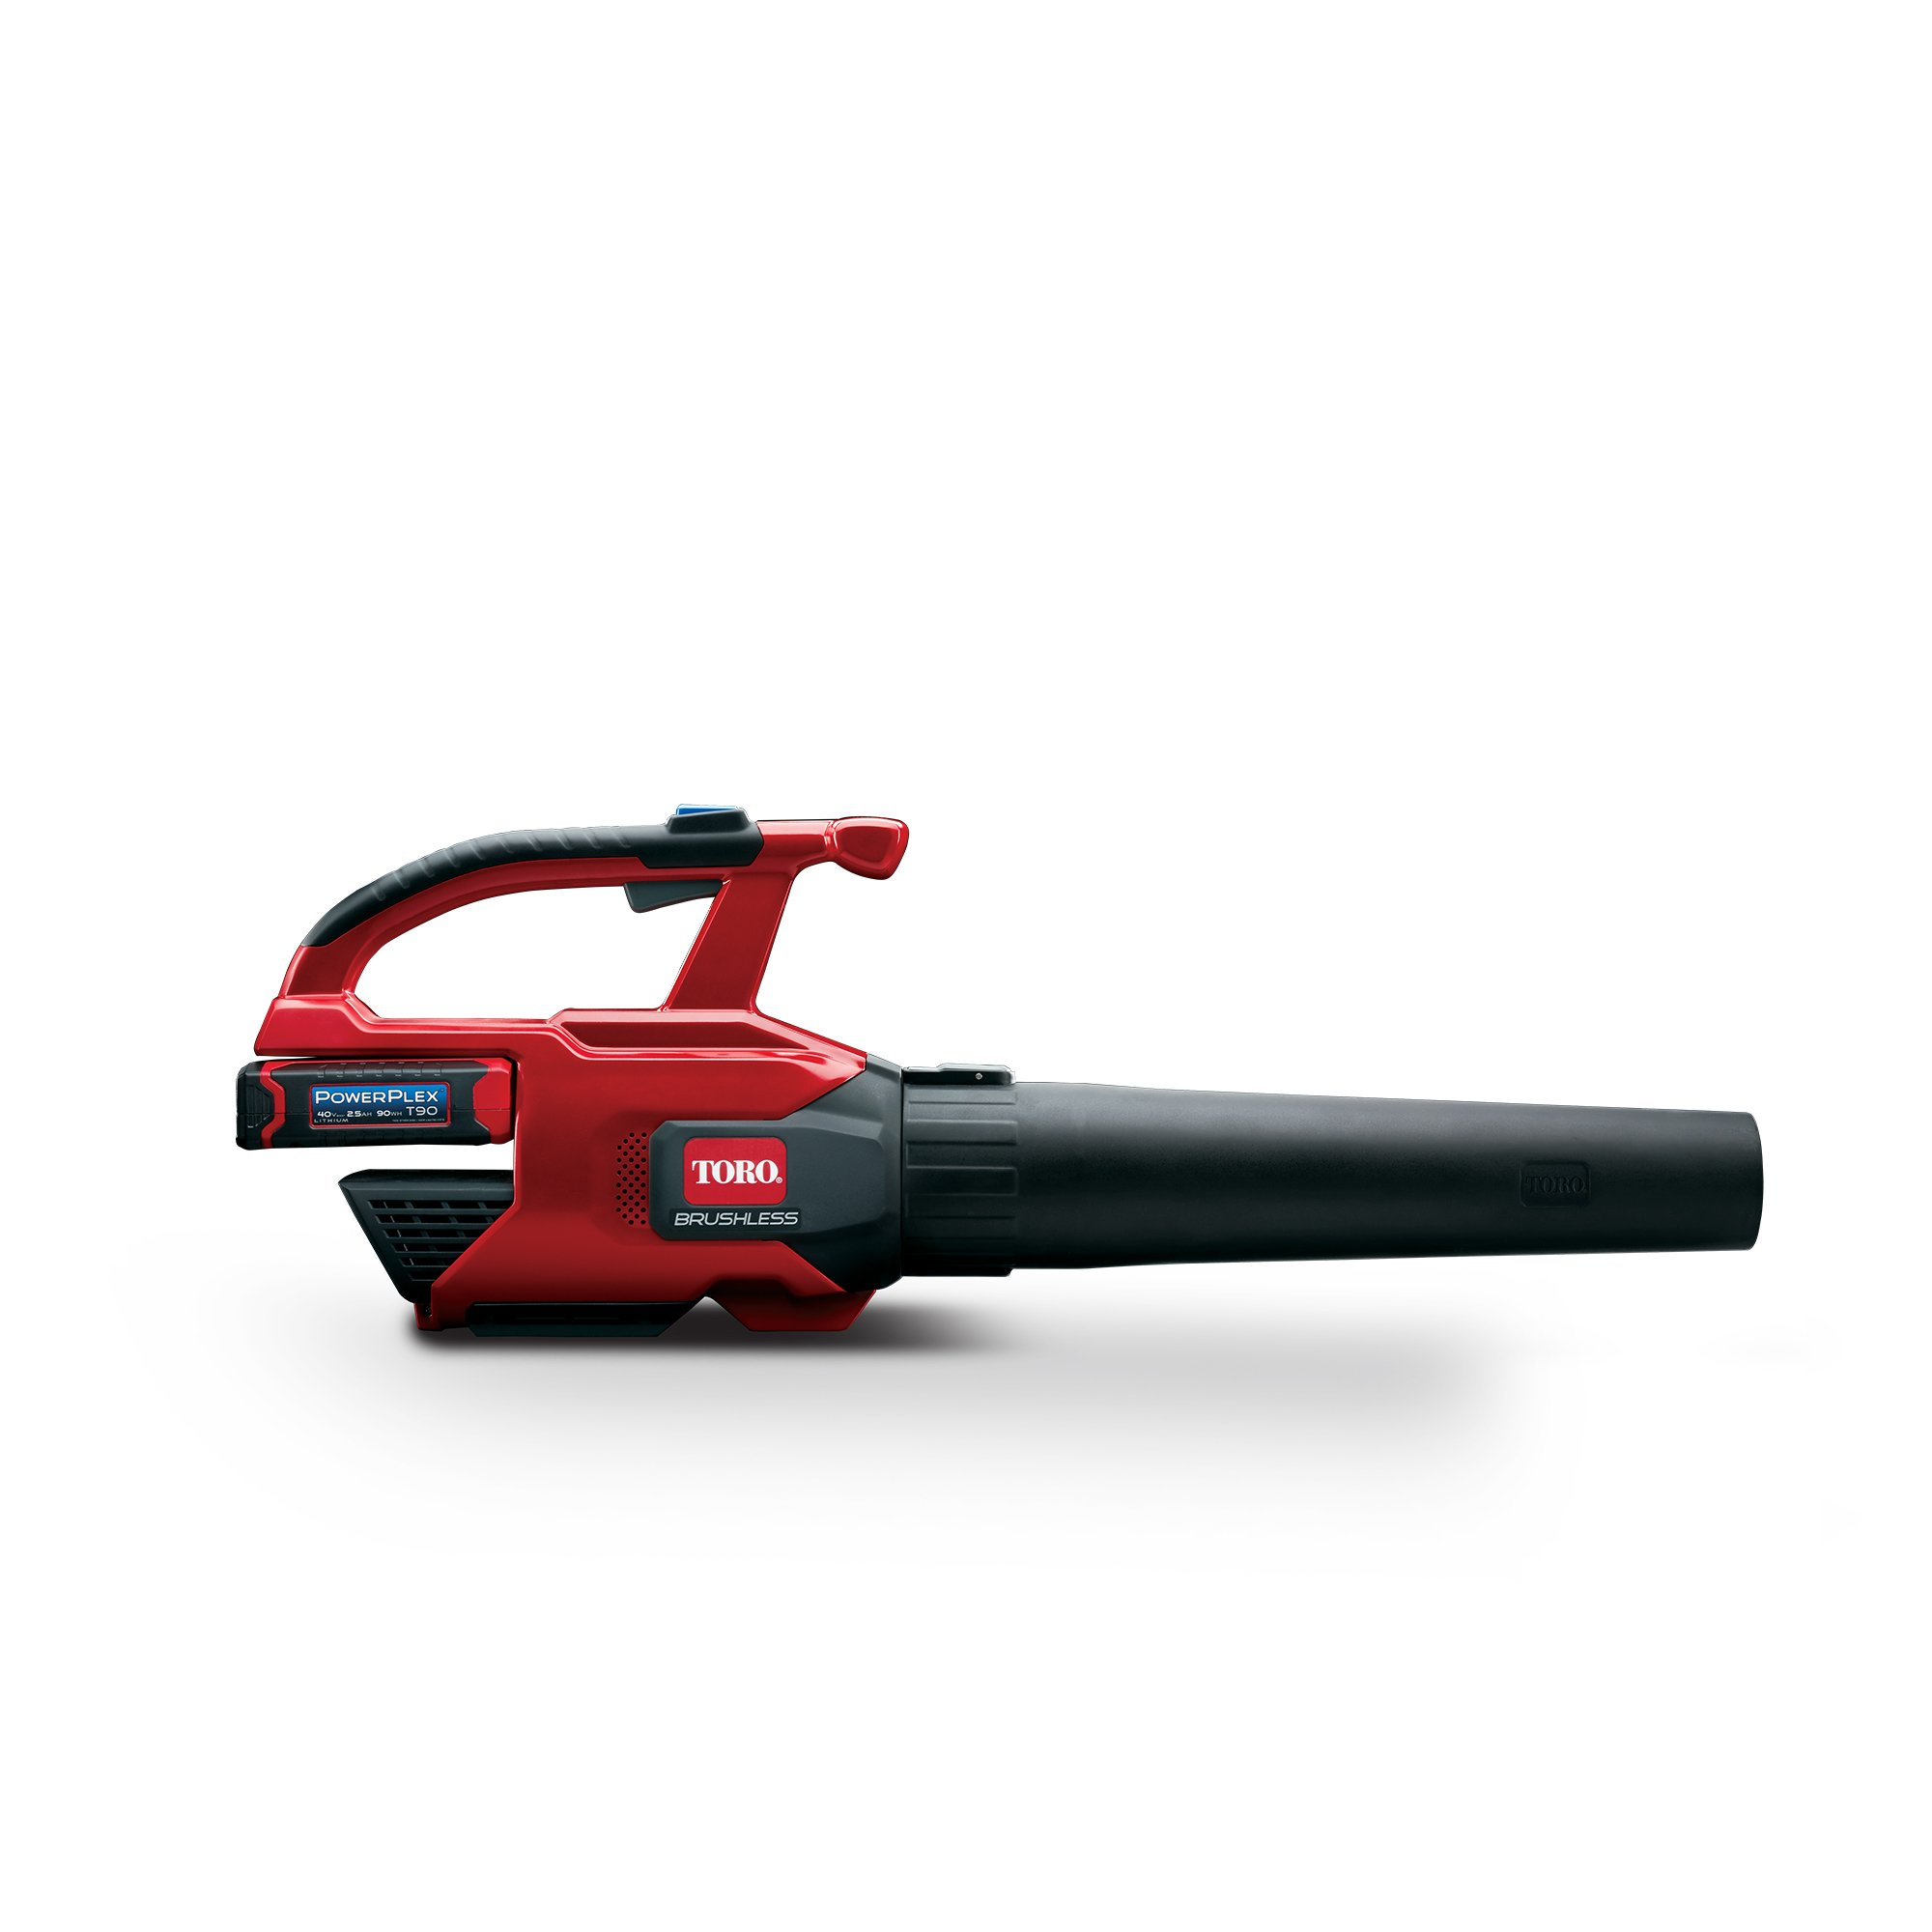 Toro PowerPlex 51690 Brushless 40V MAX 480 CFM 150 MPH Cordless Blower, 2.5 Ah Battery & Charger Included